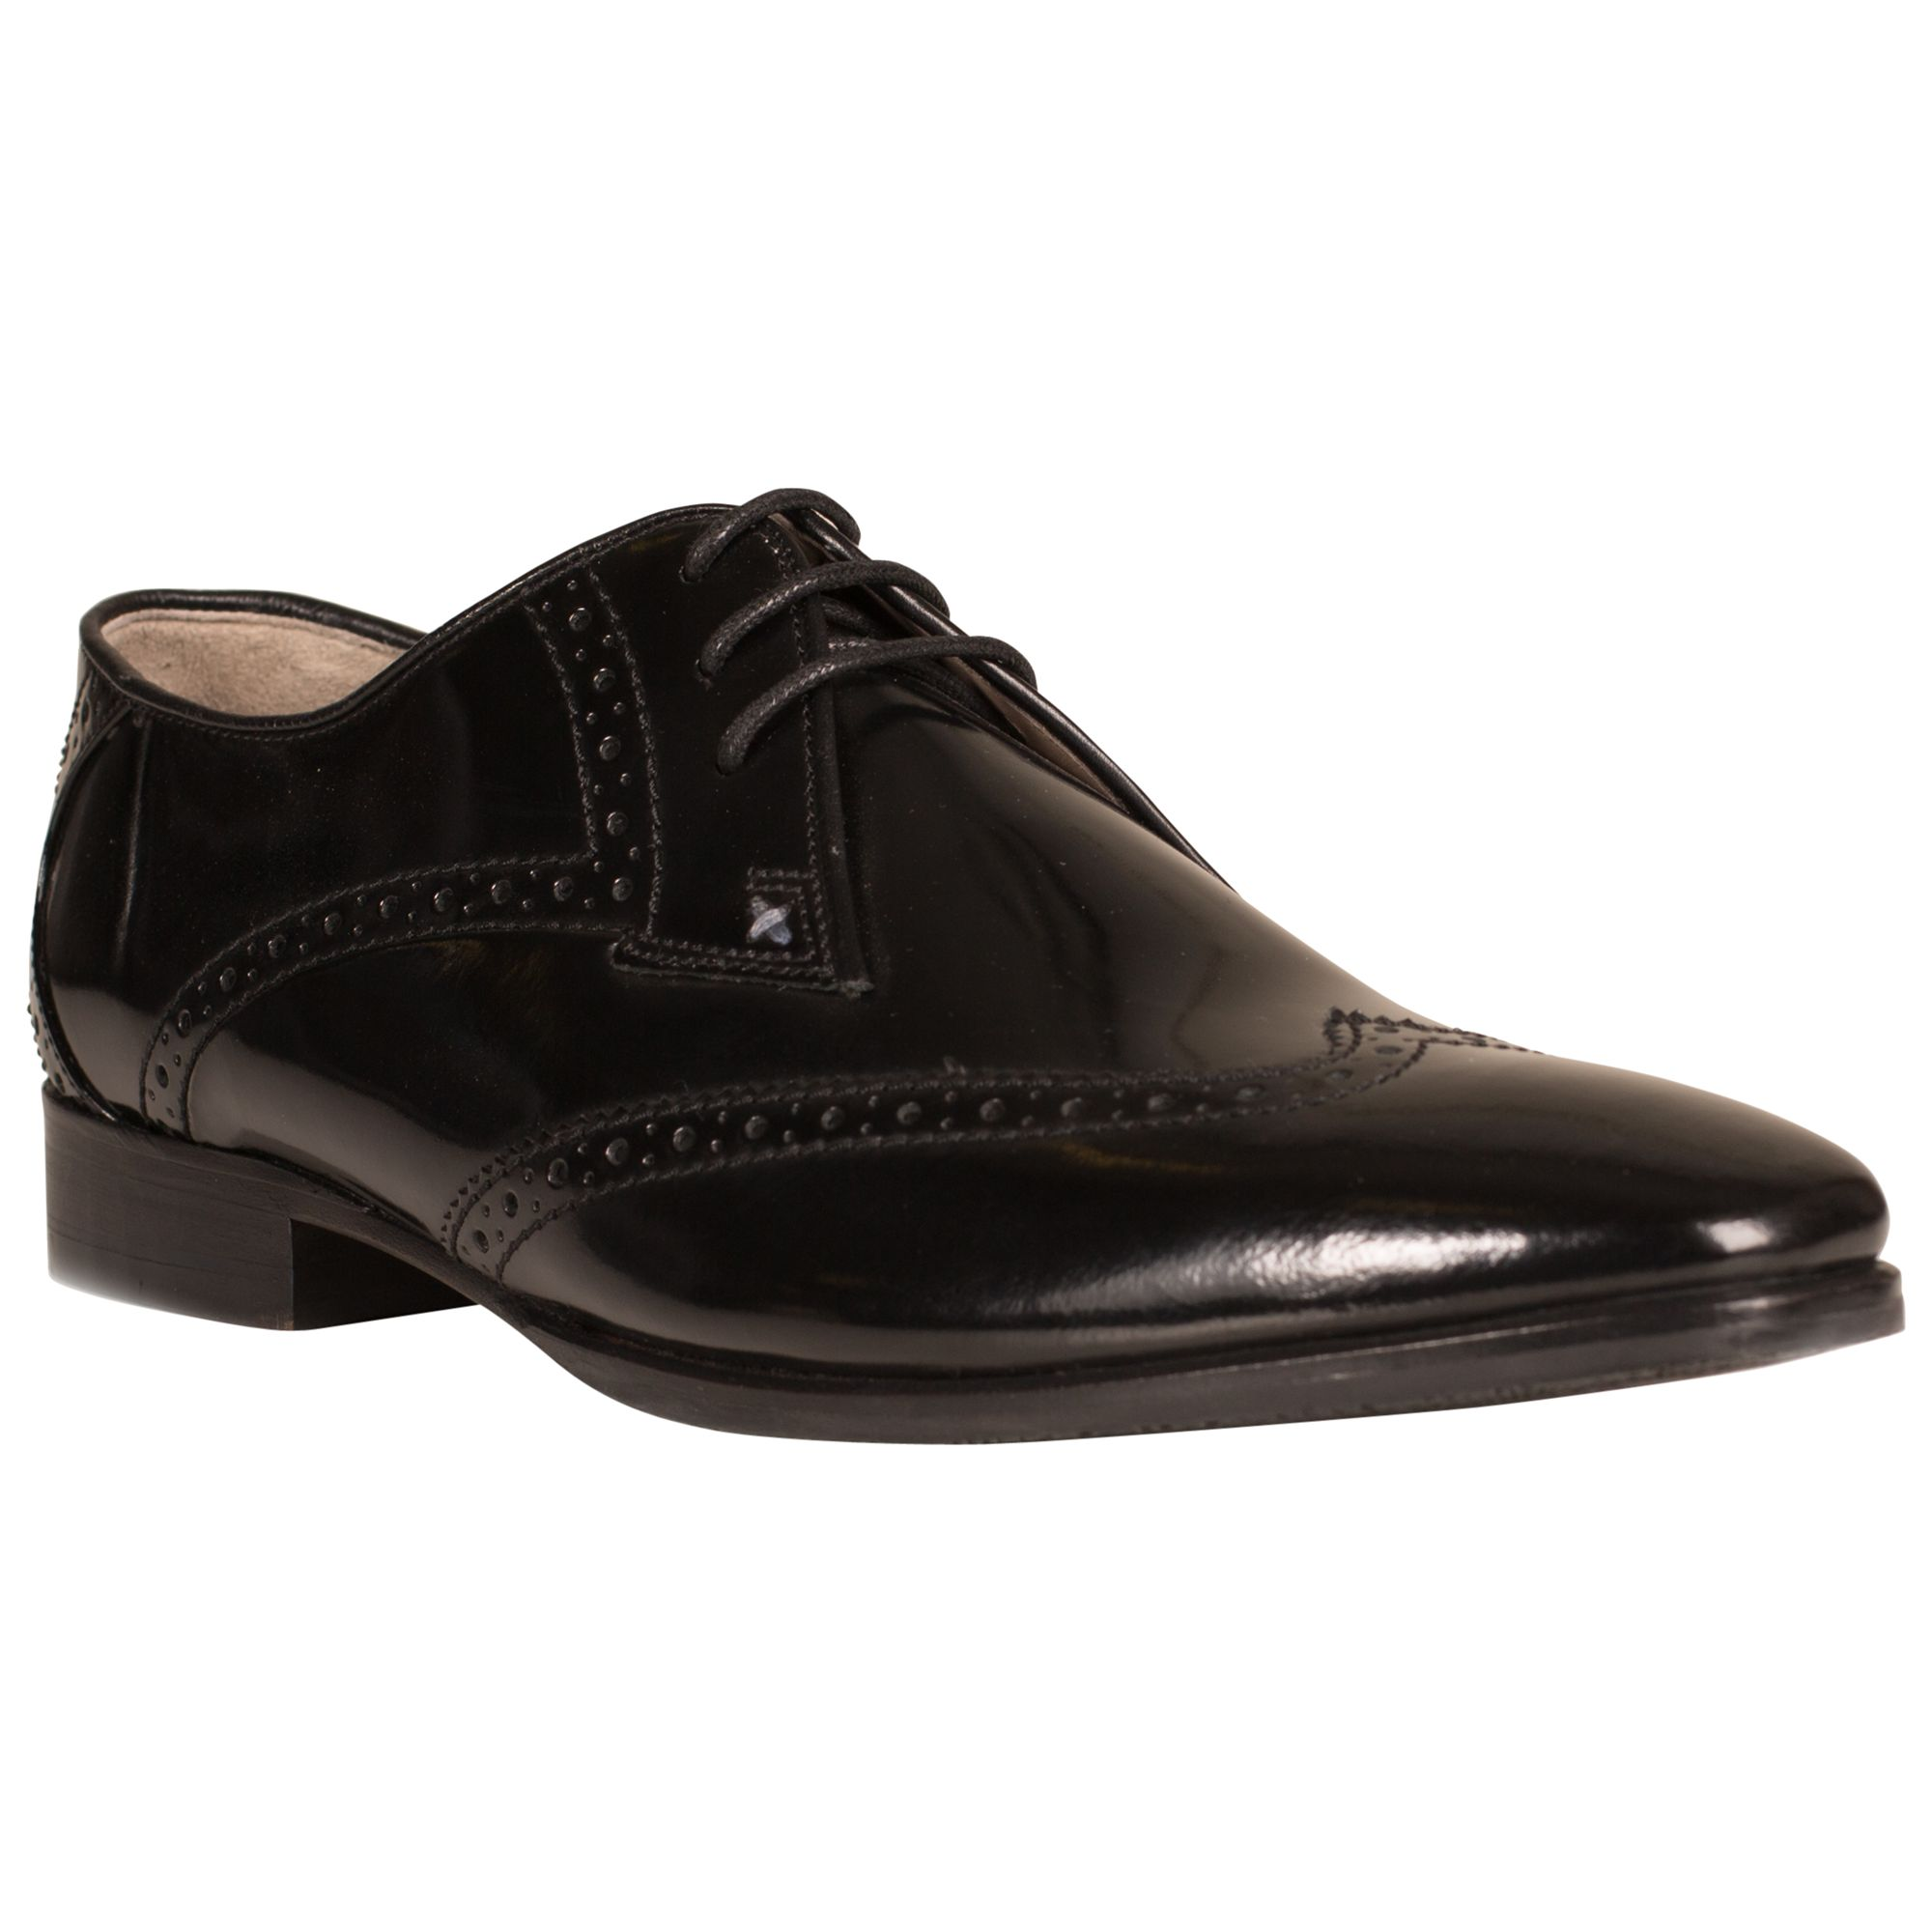 Oliver Sweeney Oliver Sweeney Buxhall Patent Brogue Derby Shoes